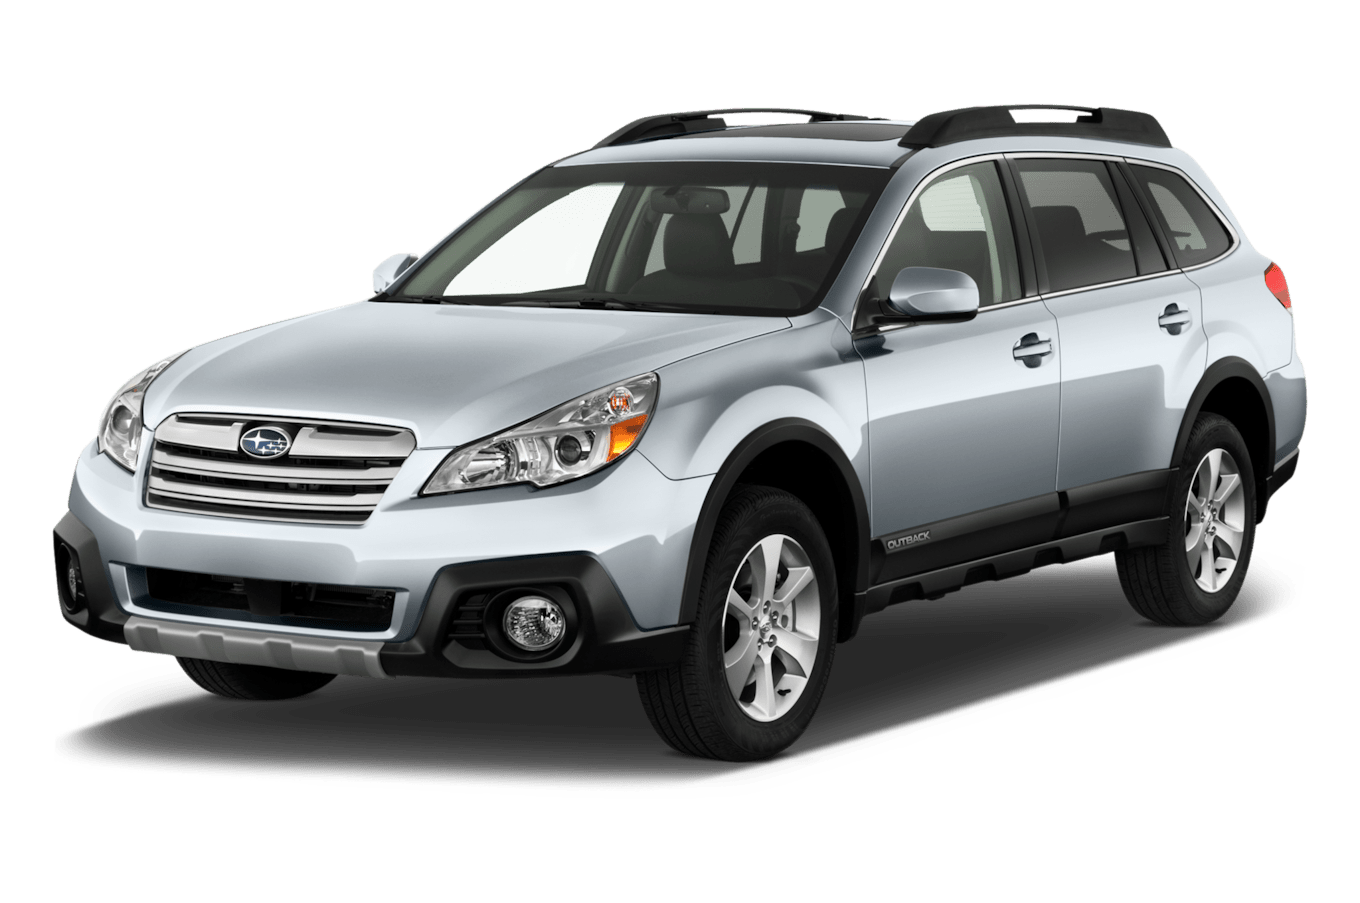 small resolution of 2013 subaru outback reviews research outback prices specs wiring harness in addition 2016 subaru outback wagon further subaru